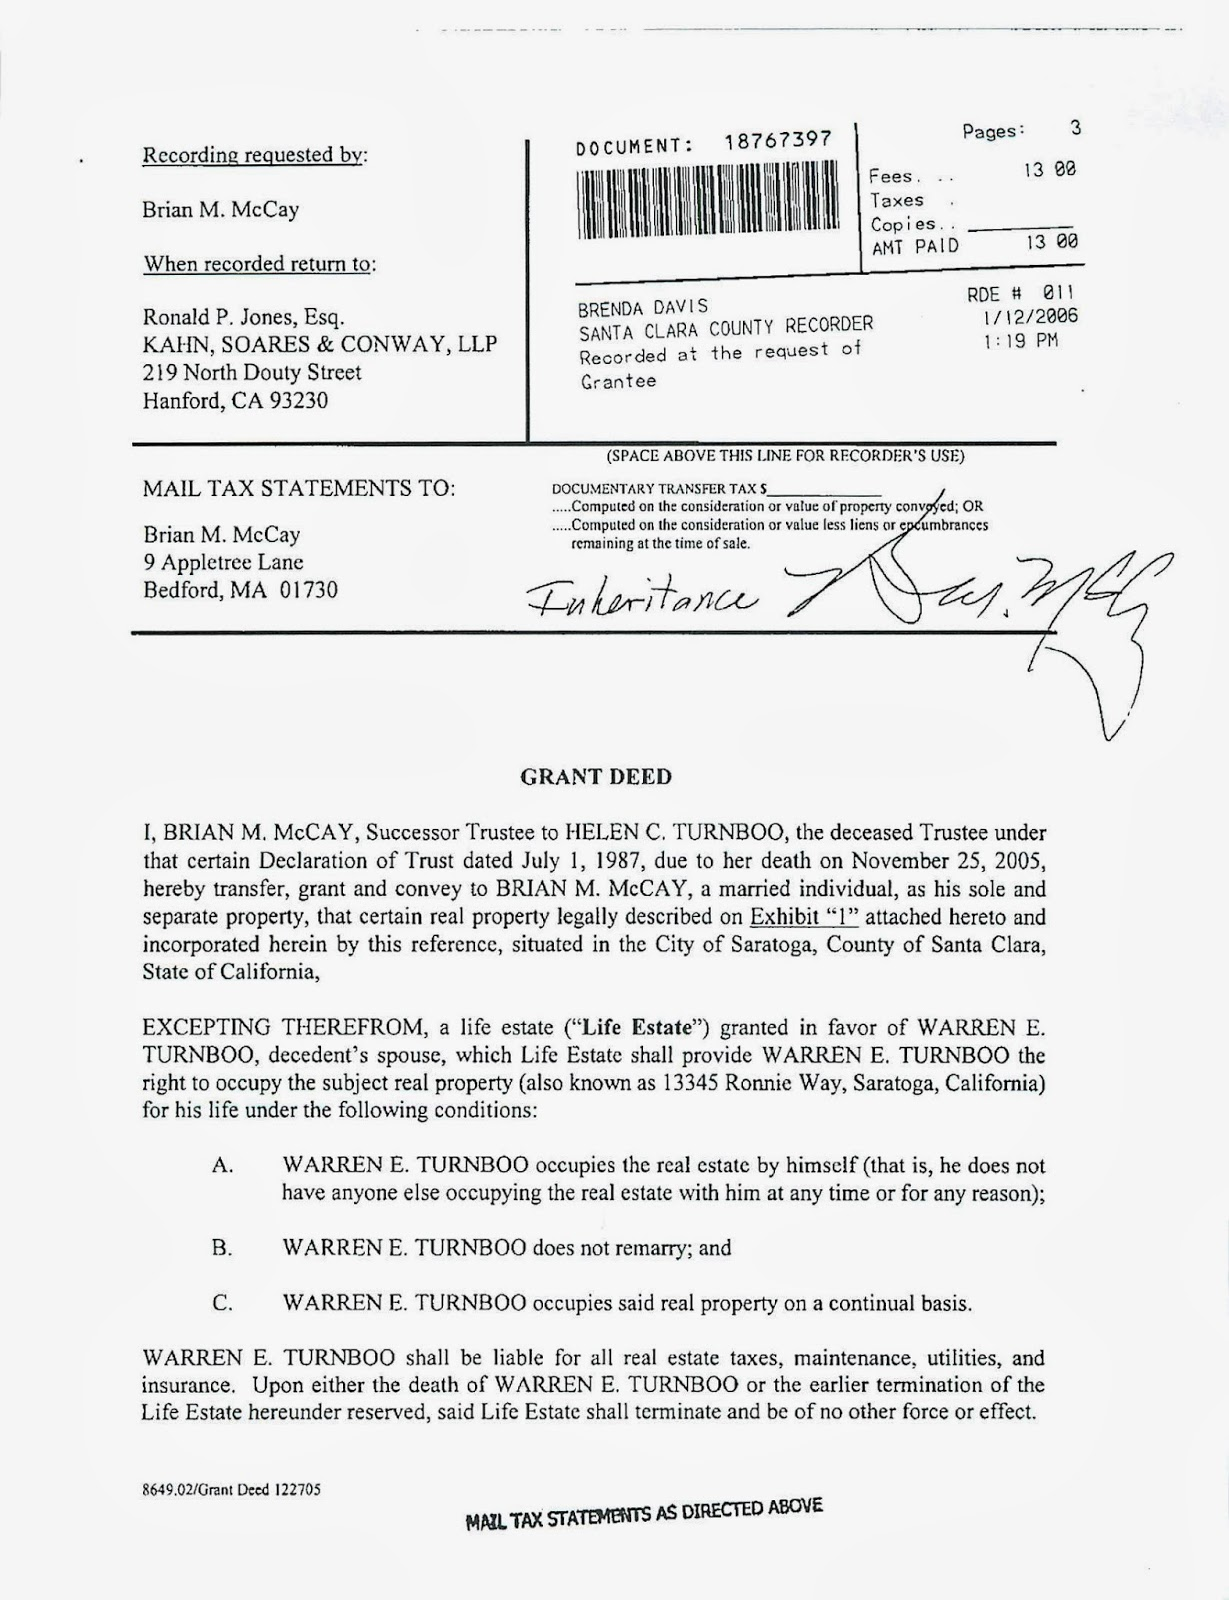 deed of conveyance template - estate planning in california what is a life estate